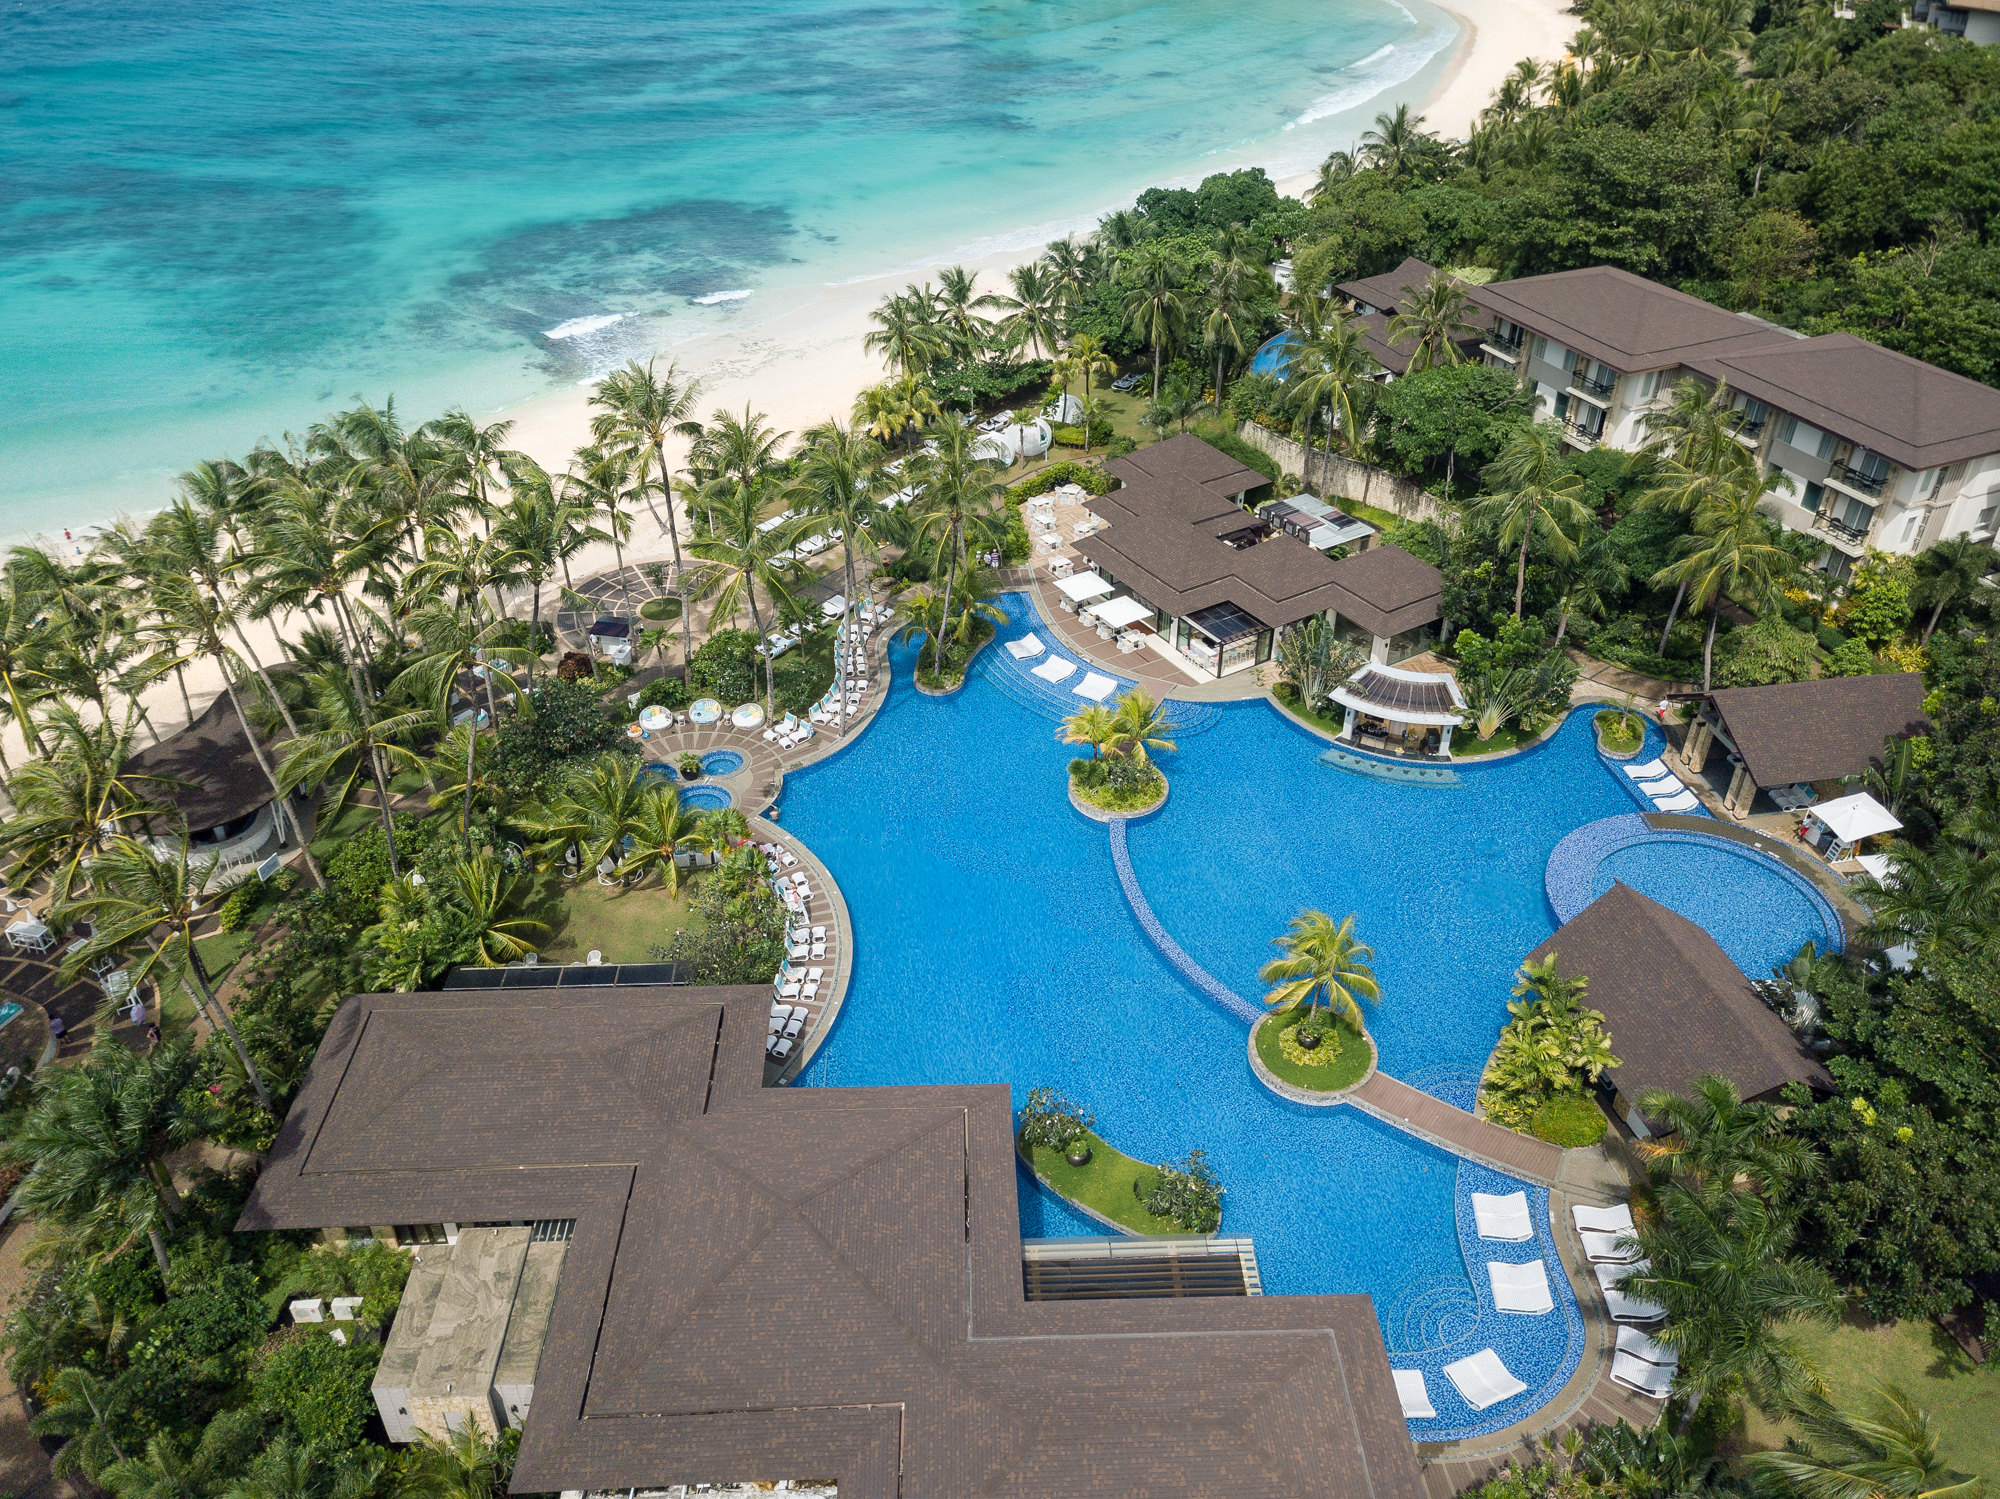 4D3N Boracay Package with Airfare | Movenpick Resort from Manila - day 1